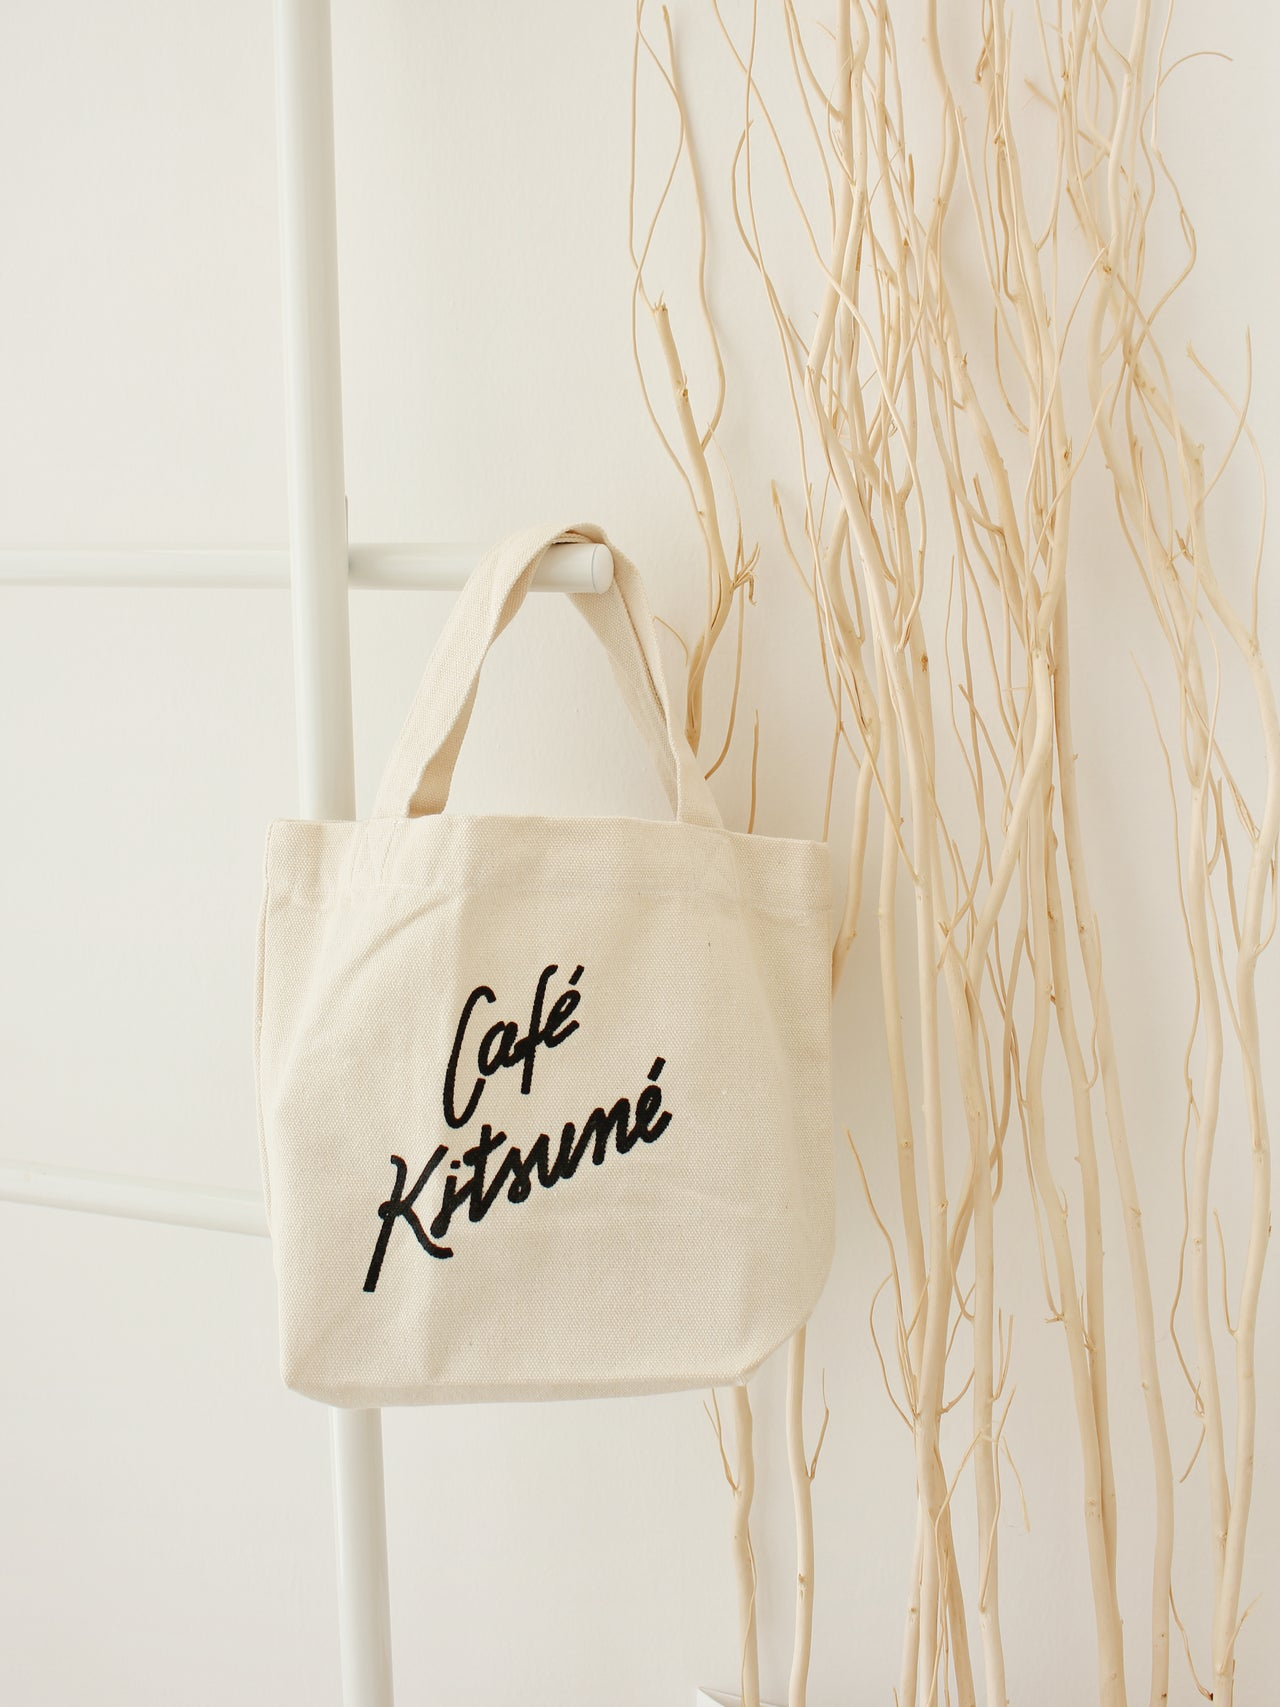 Cafe Kitsume Tote - LovelyMadness Clothing Online Fashion Malaysia